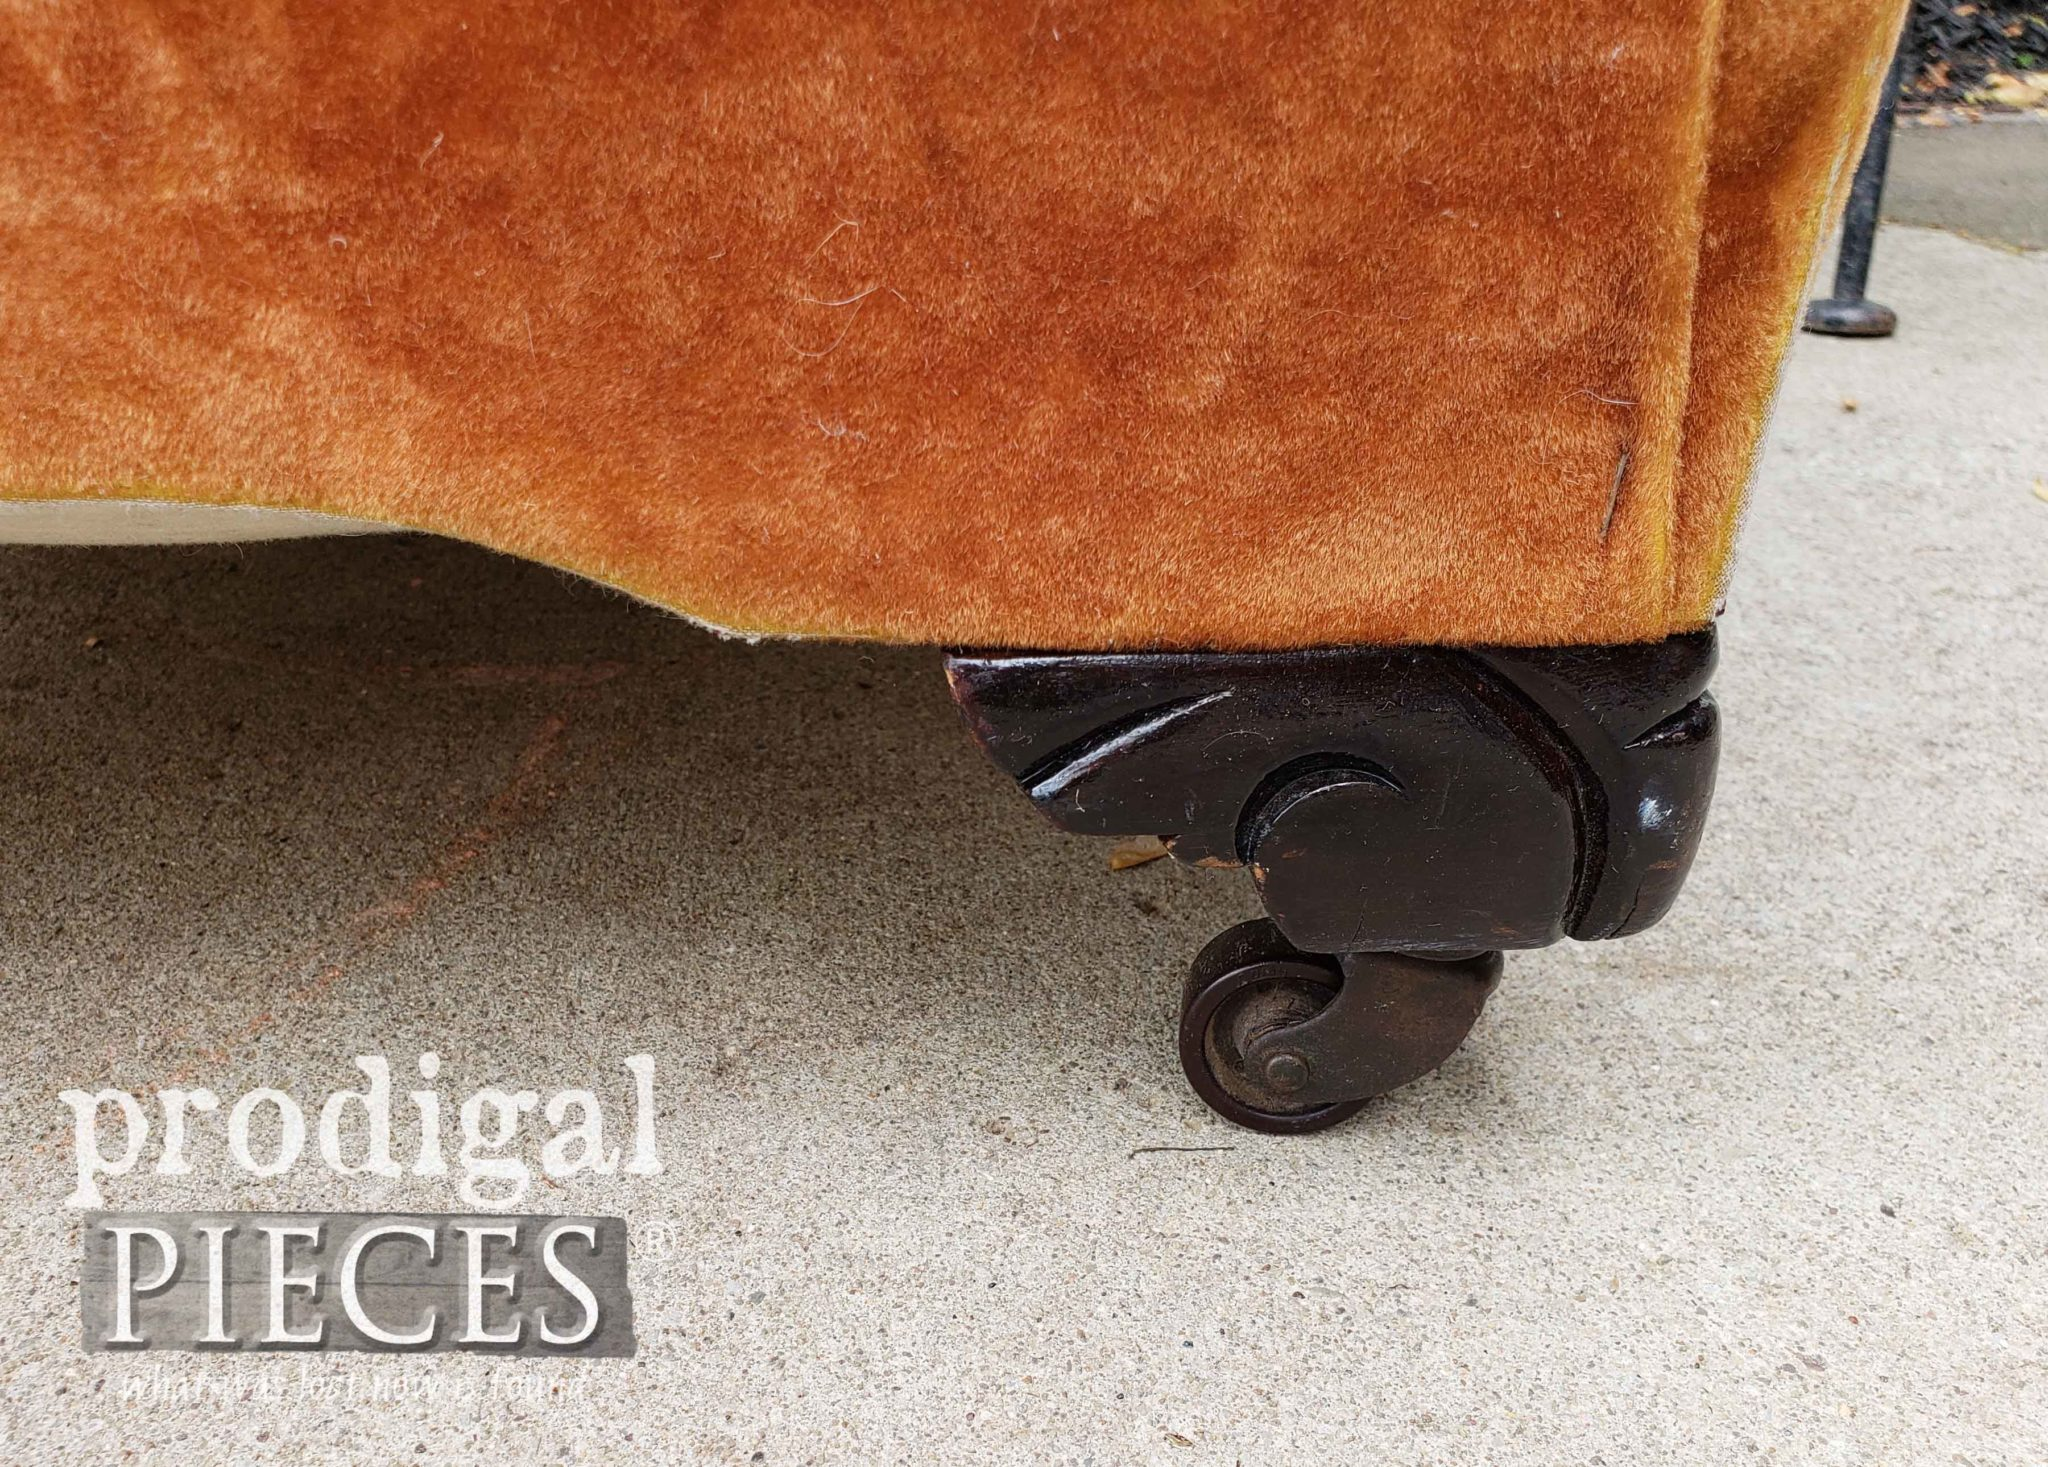 Vintage Ottoman Carved Wooden Feet | prodigalpieces.com